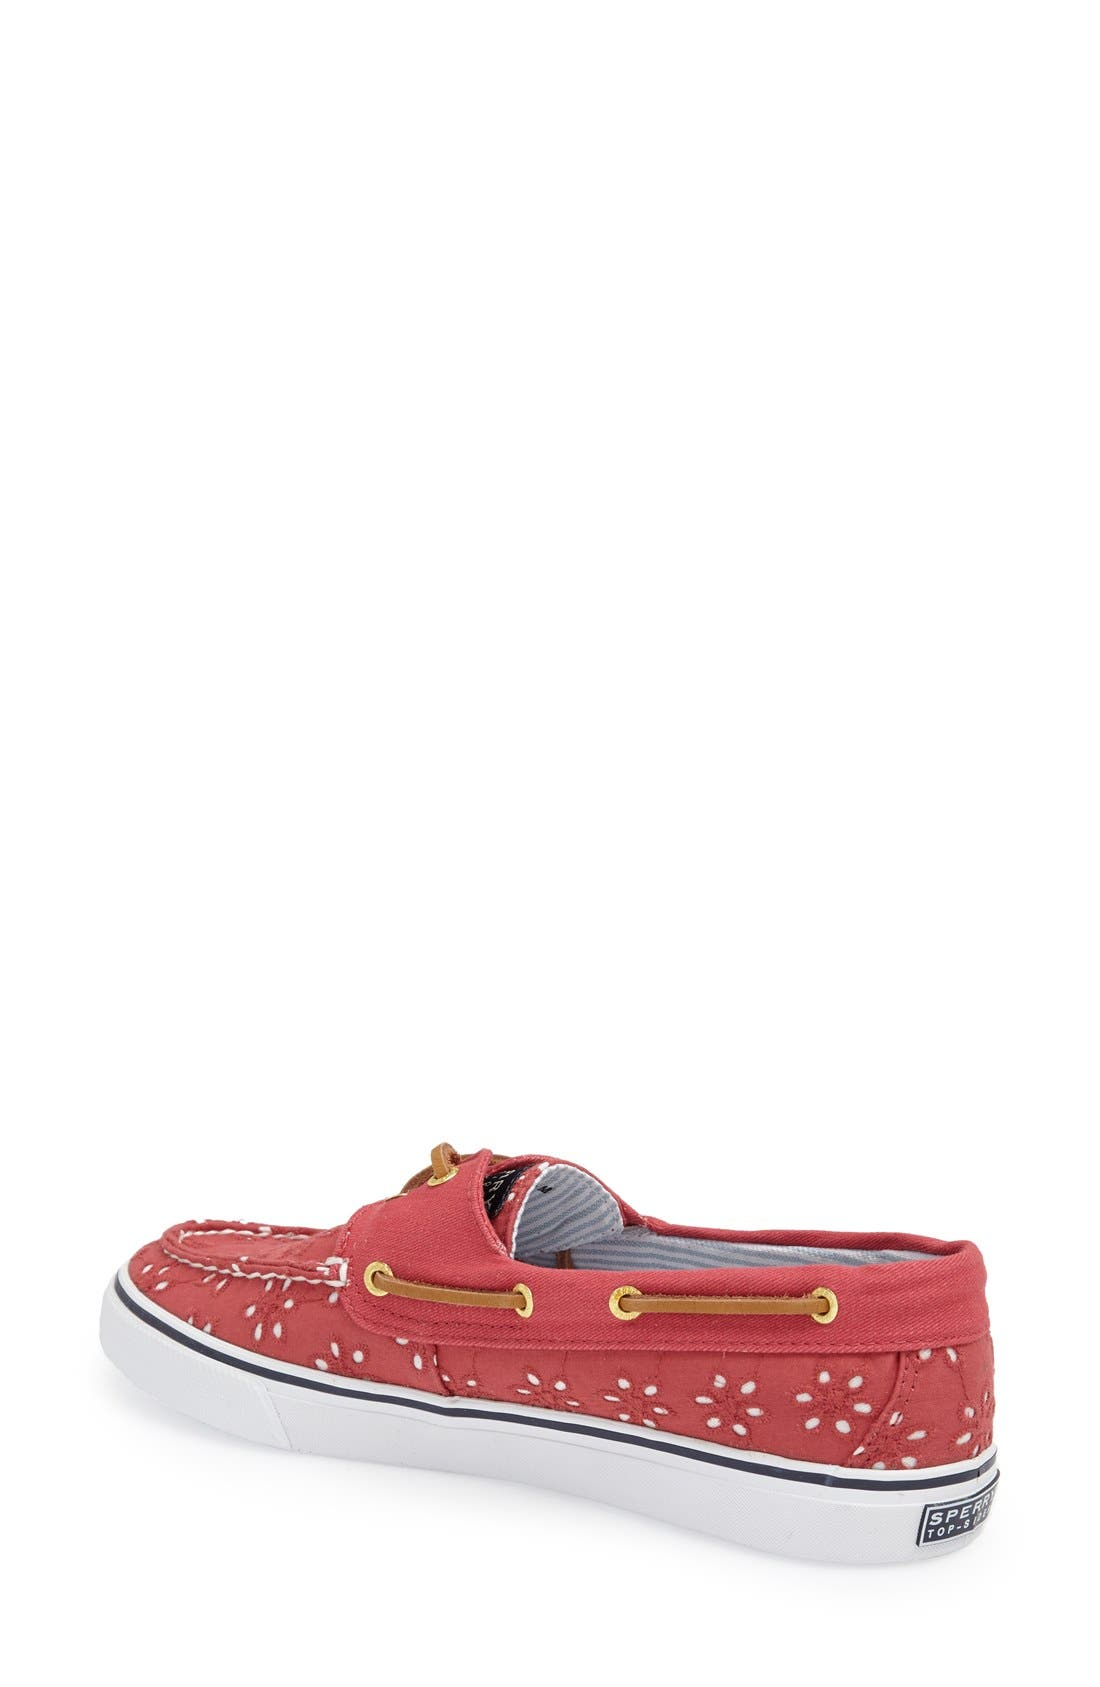 Top-Sider<sup>®</sup> 'Bahama' Sequined Boat Shoe,                             Alternate thumbnail 78, color,